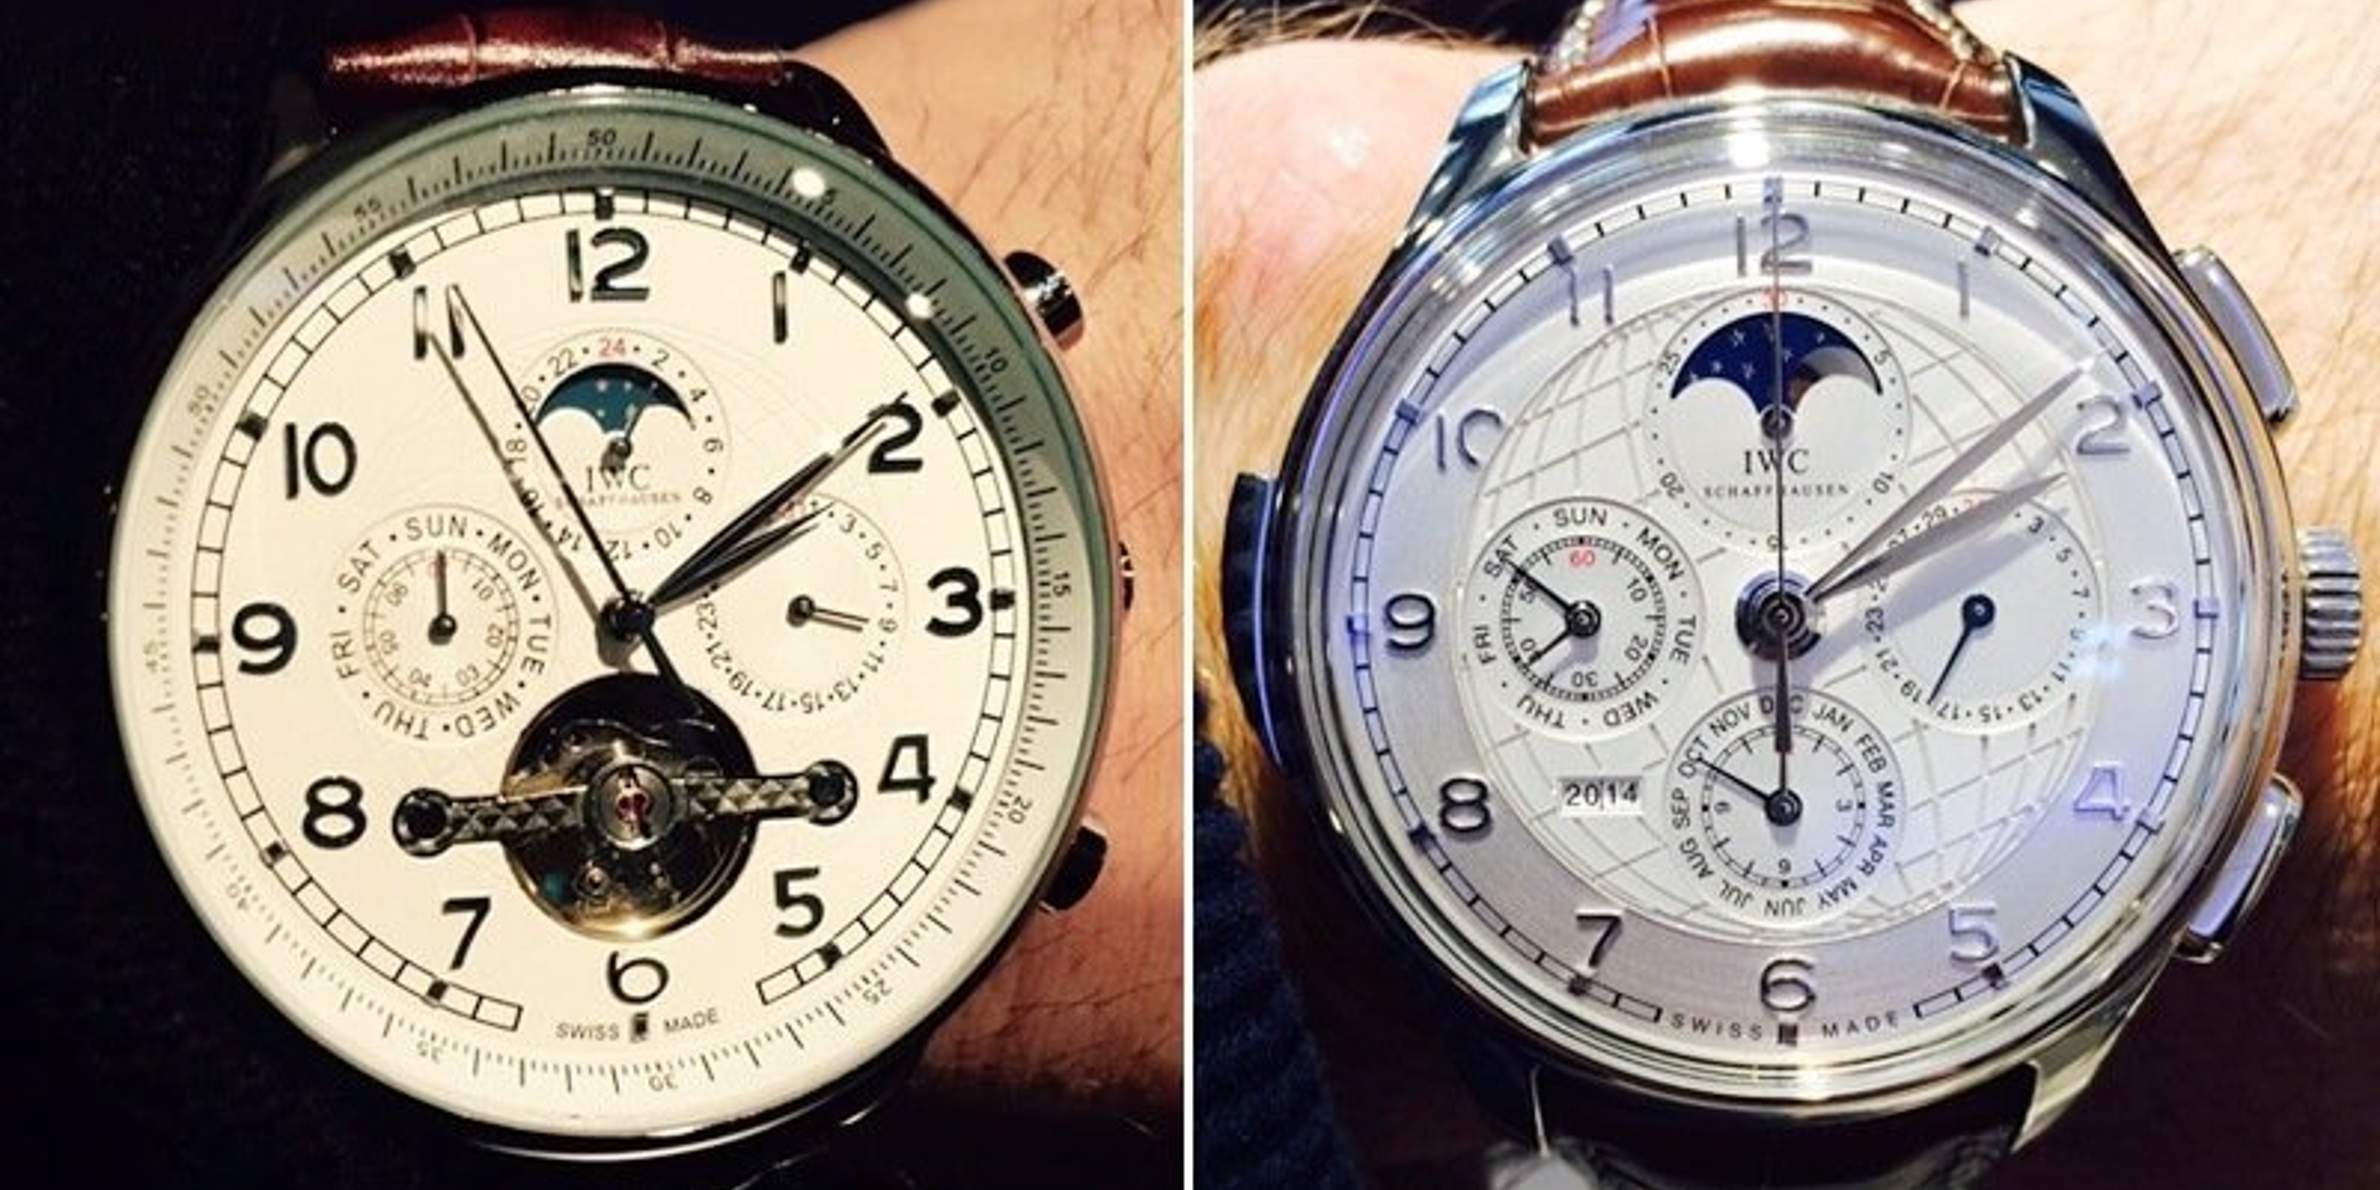 How to identify fake watches-watch comparison